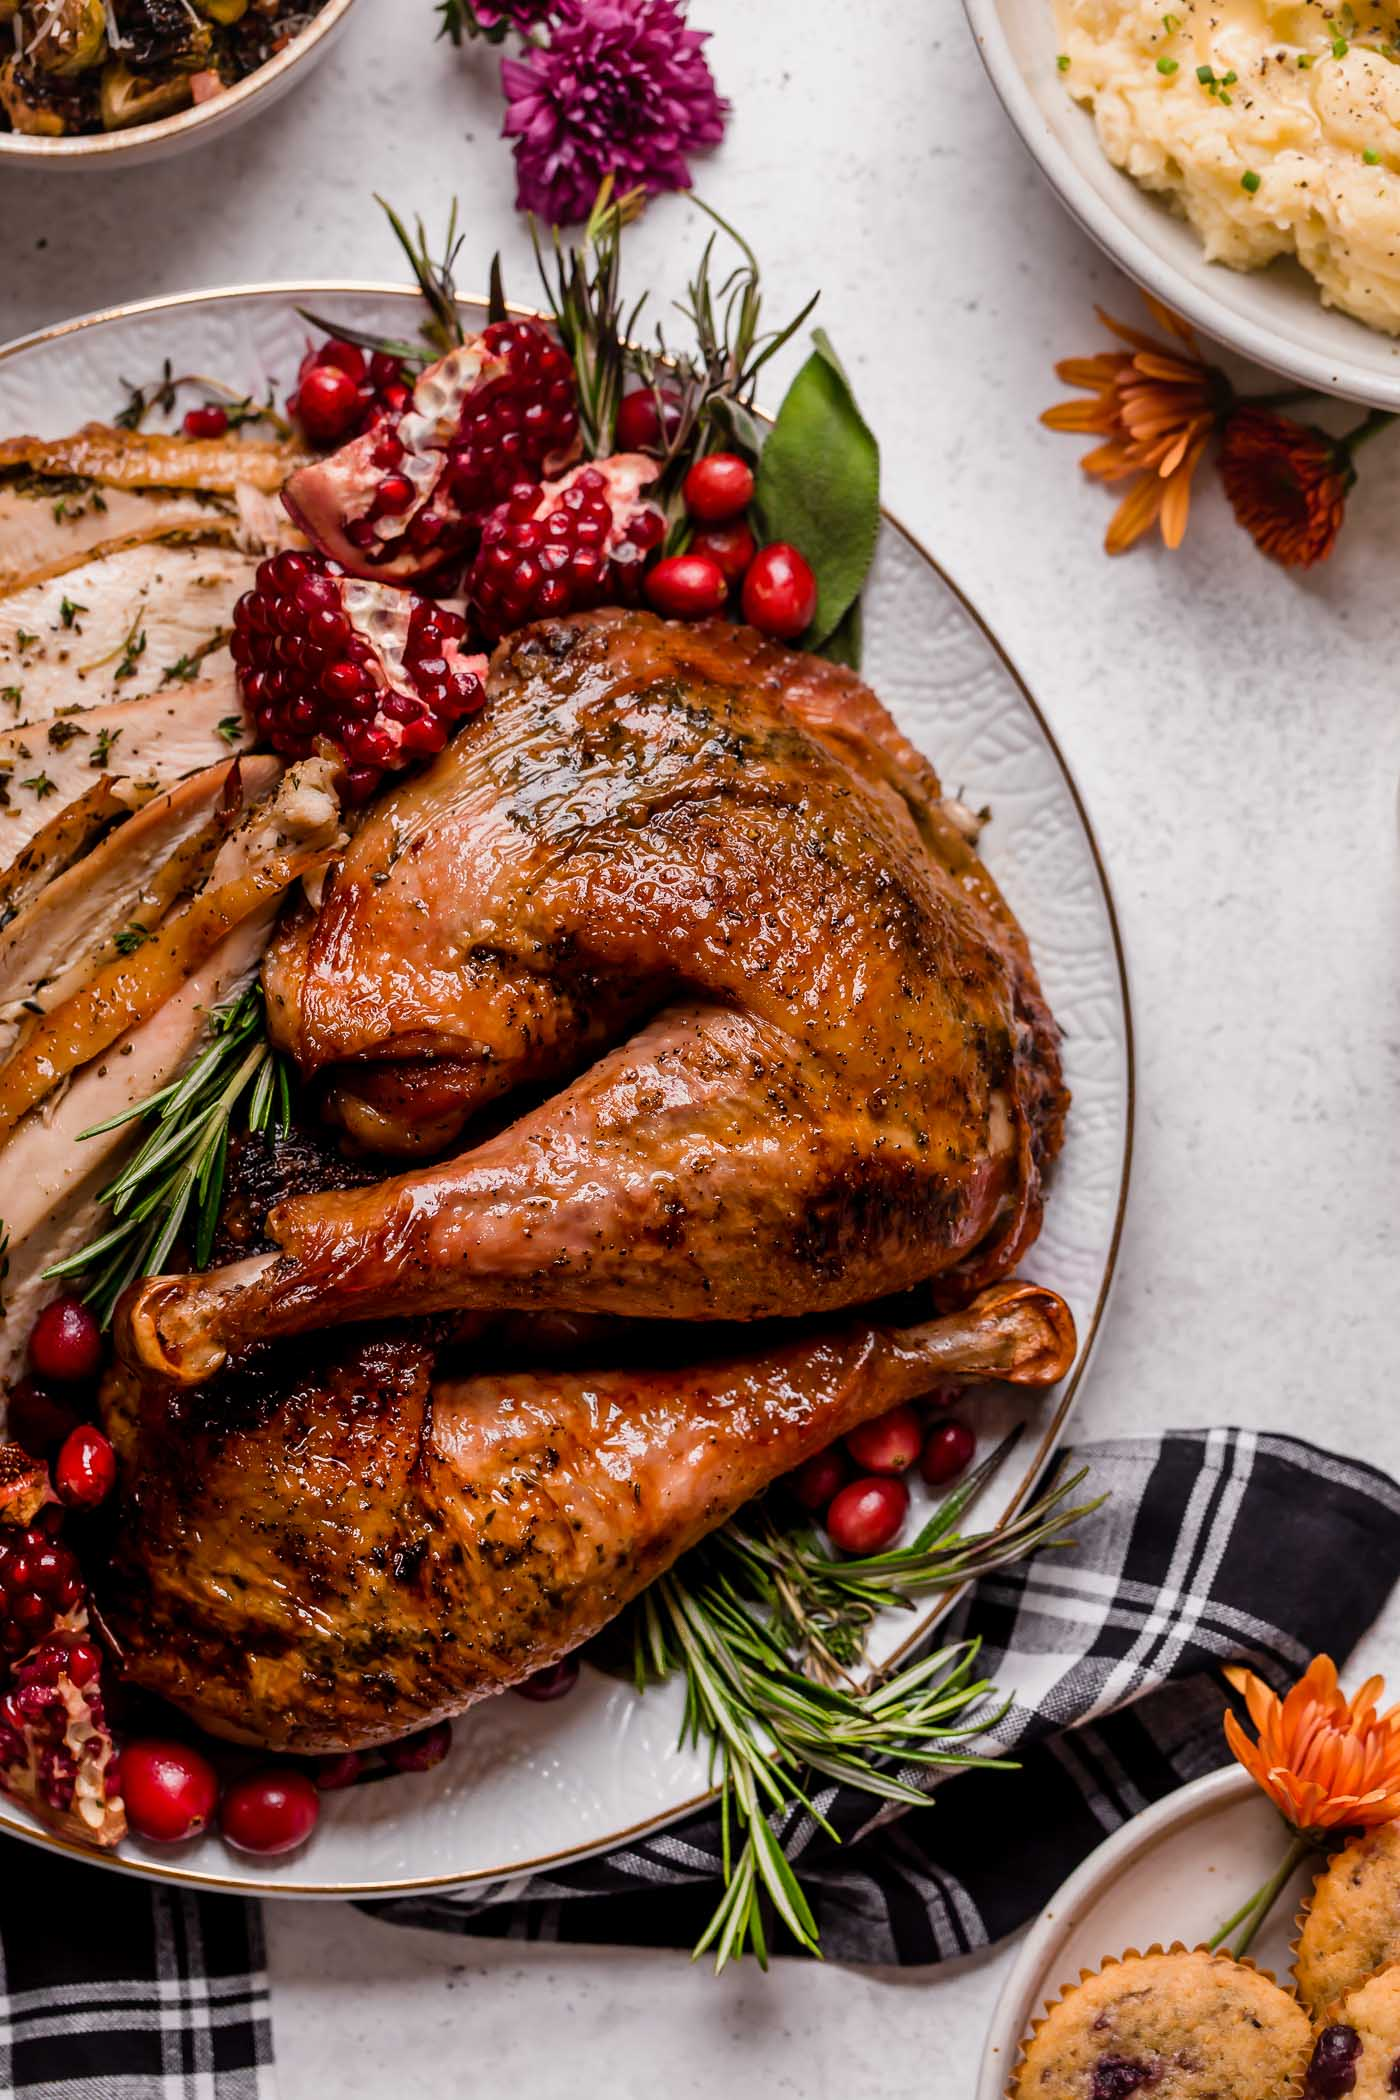 maple glazed spatchcock turkey. spatchcock turkey gets slathered in an easy-to-make maple herb butter, then roasted & finished with a maple glaze. the perfect thanksgiving flavors, in one easy turkey recipe! roasting a juicy & moist thanksgiving turkey has never been easier, especially thanks to @Honeysuckle White turkey (#ad)! #playswellwithbutter #turkeyrecipe #thanksgivingturkey #moistturkeyrecipe #bestthanksgivingturkeyrecipe #spatchcock #spatchcockturkey